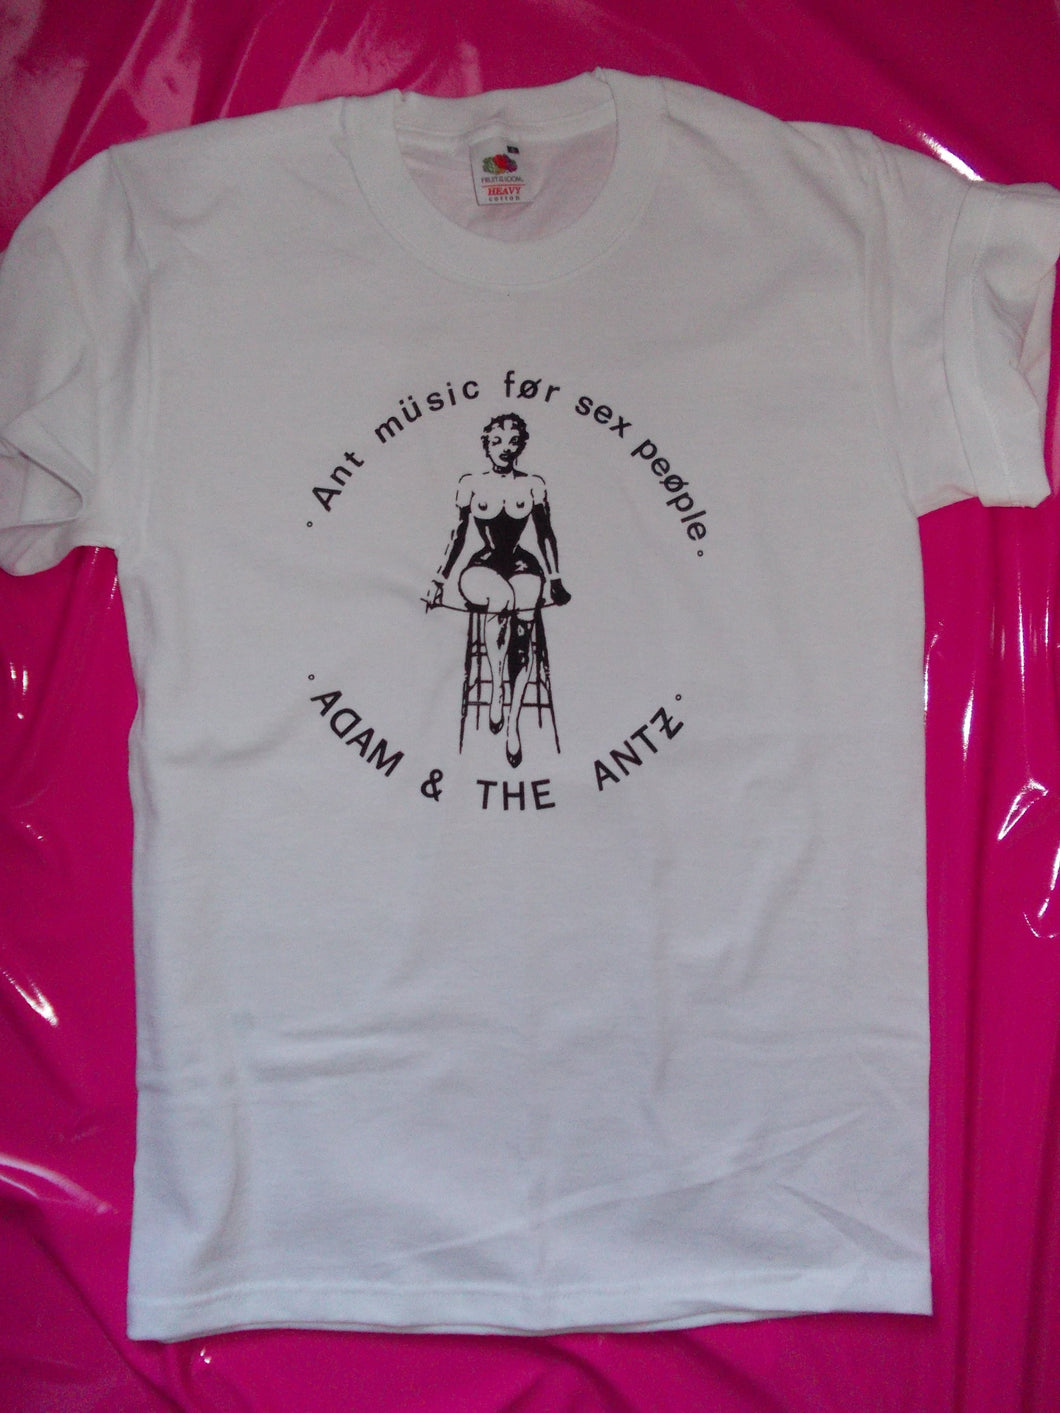 Adam & The Ants - Ant Music For Sex People T-Shirt